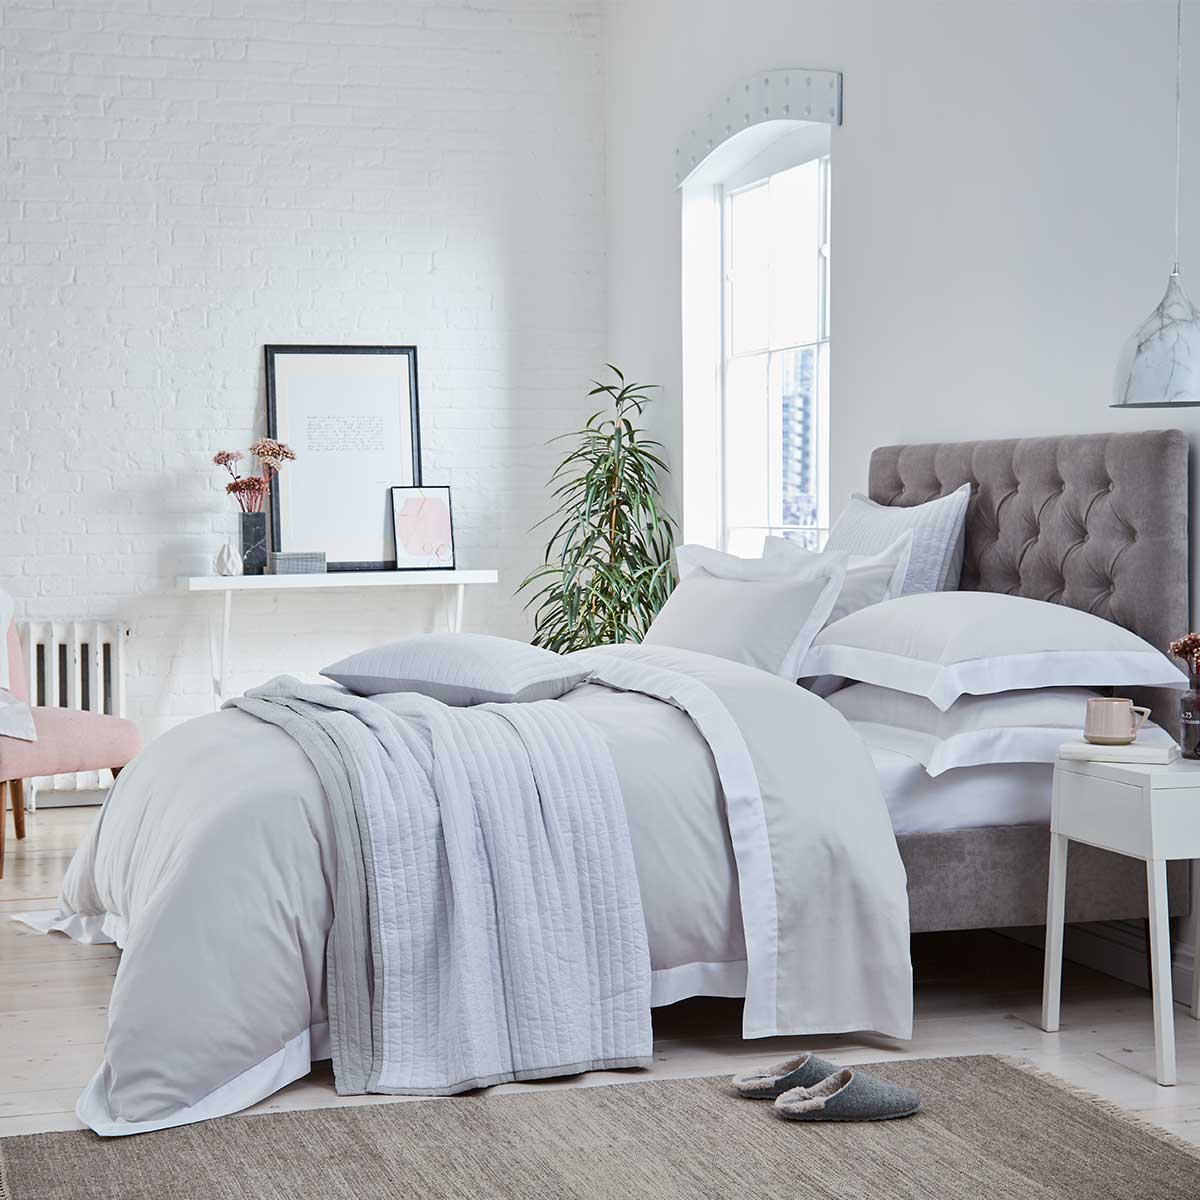 Top 15 Stylish Bedding and Bedroom Design Pinterest Accounts